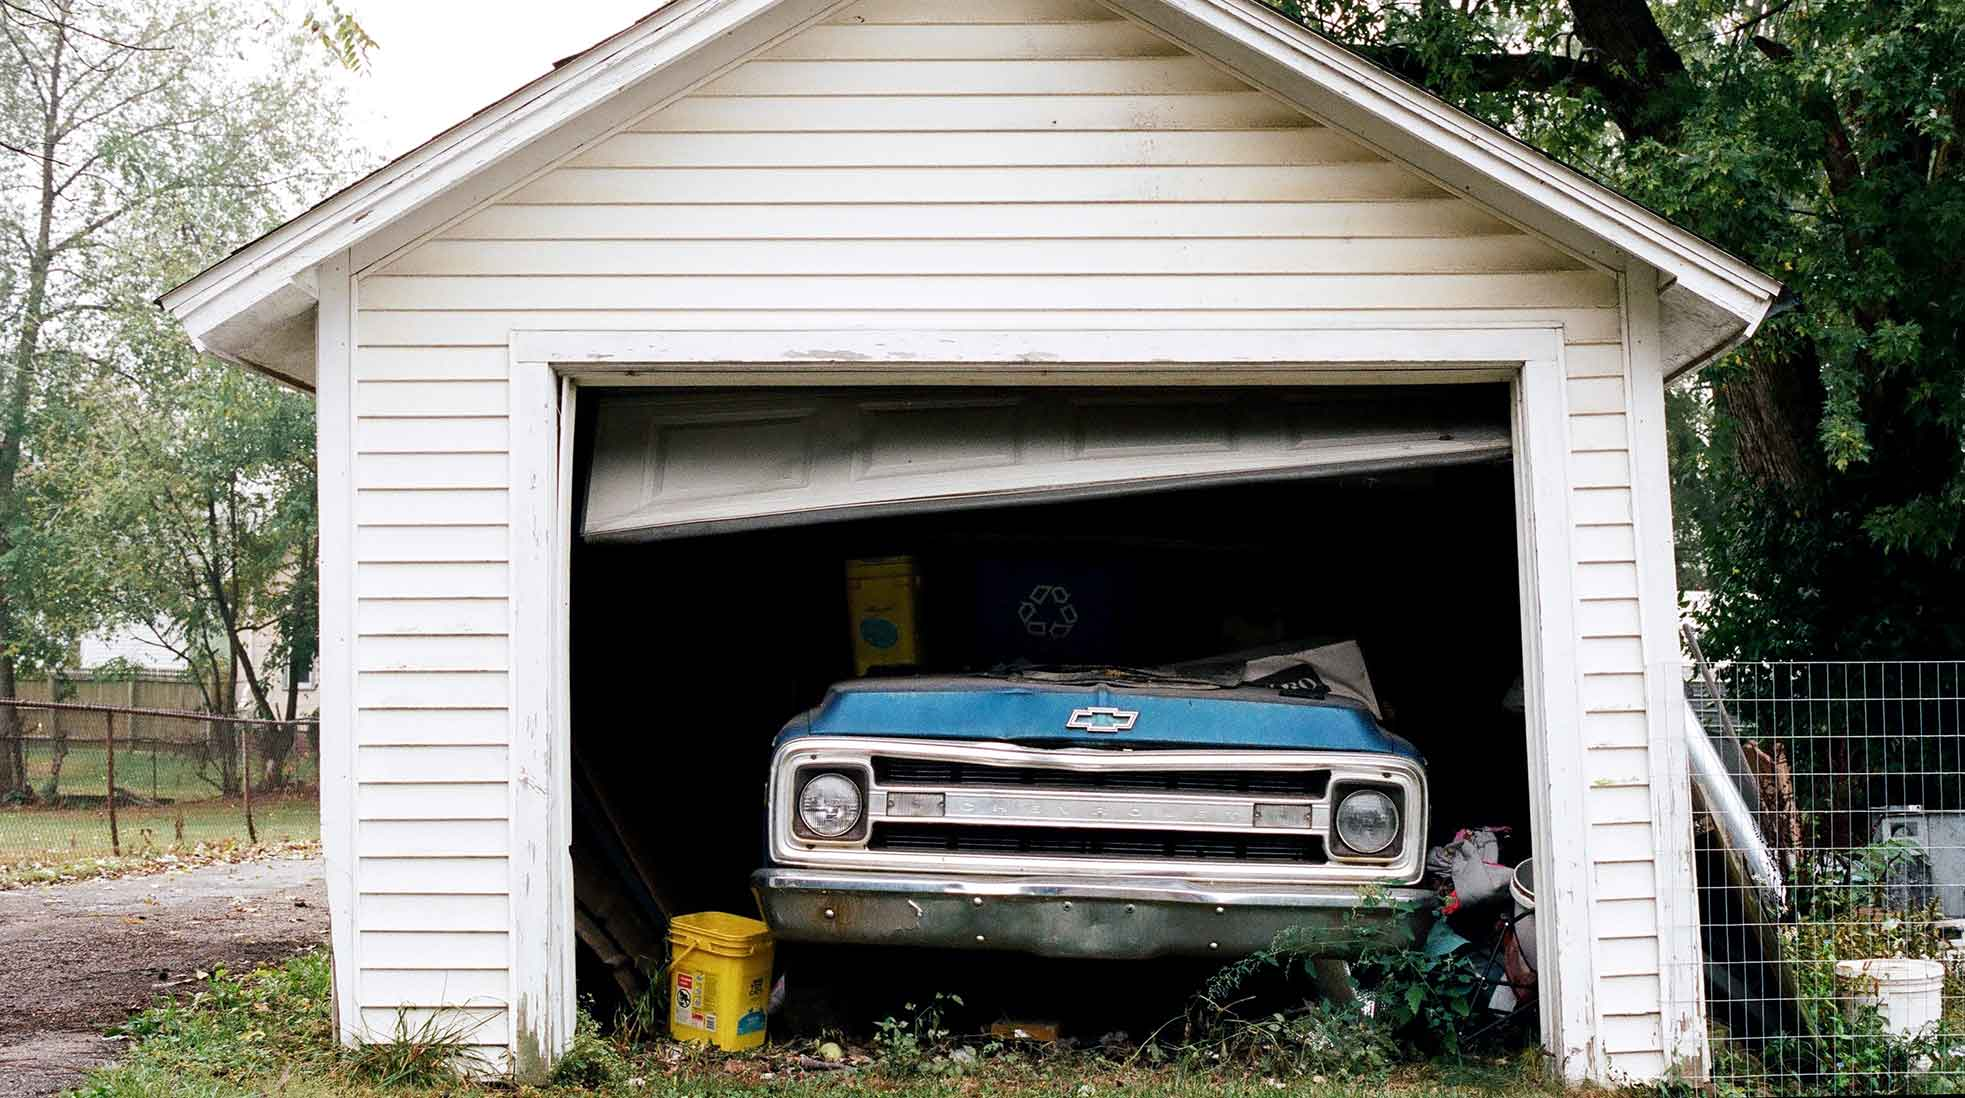 An old garage with a blue Chevrolet parked inside